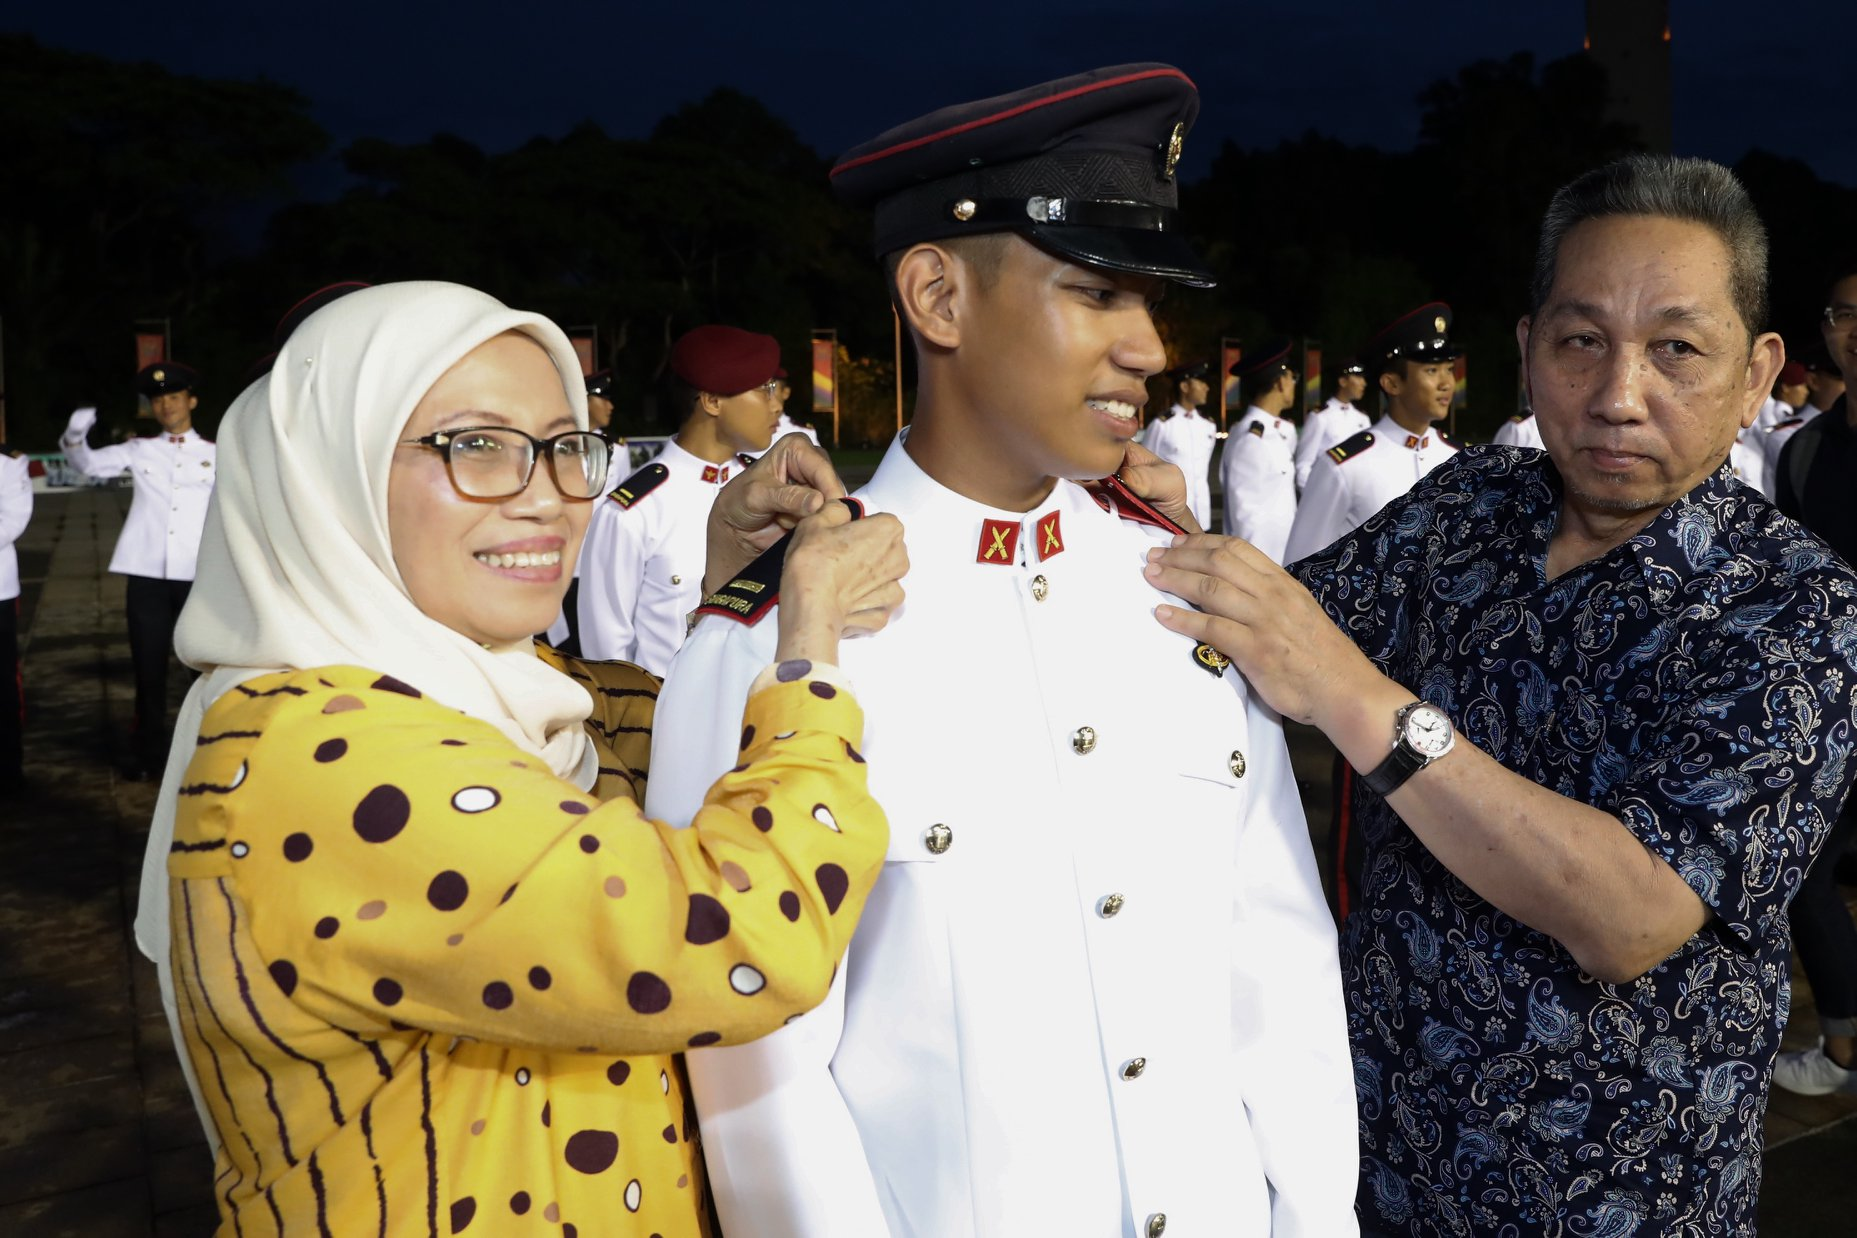 Proud parents of 2LT Muhamad Fudhail bin Abdul Latiff affixing his rank insignias on his shoulder. Photo courtesy: MCI Clement